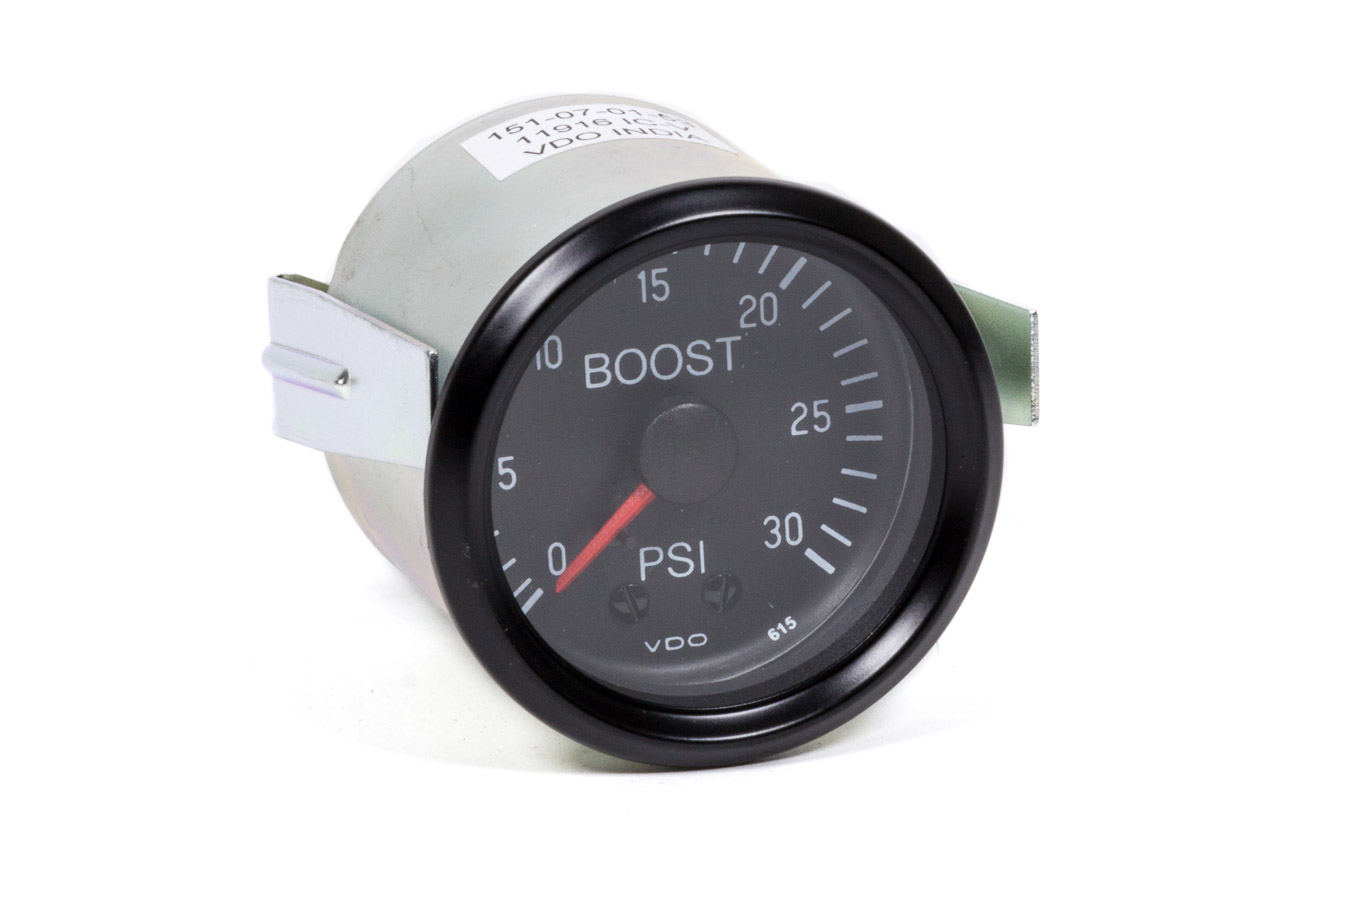 Shop For Vdo Instruments Racecar Engineering Auto Gauge Tach Wiring 30psi Boost Press